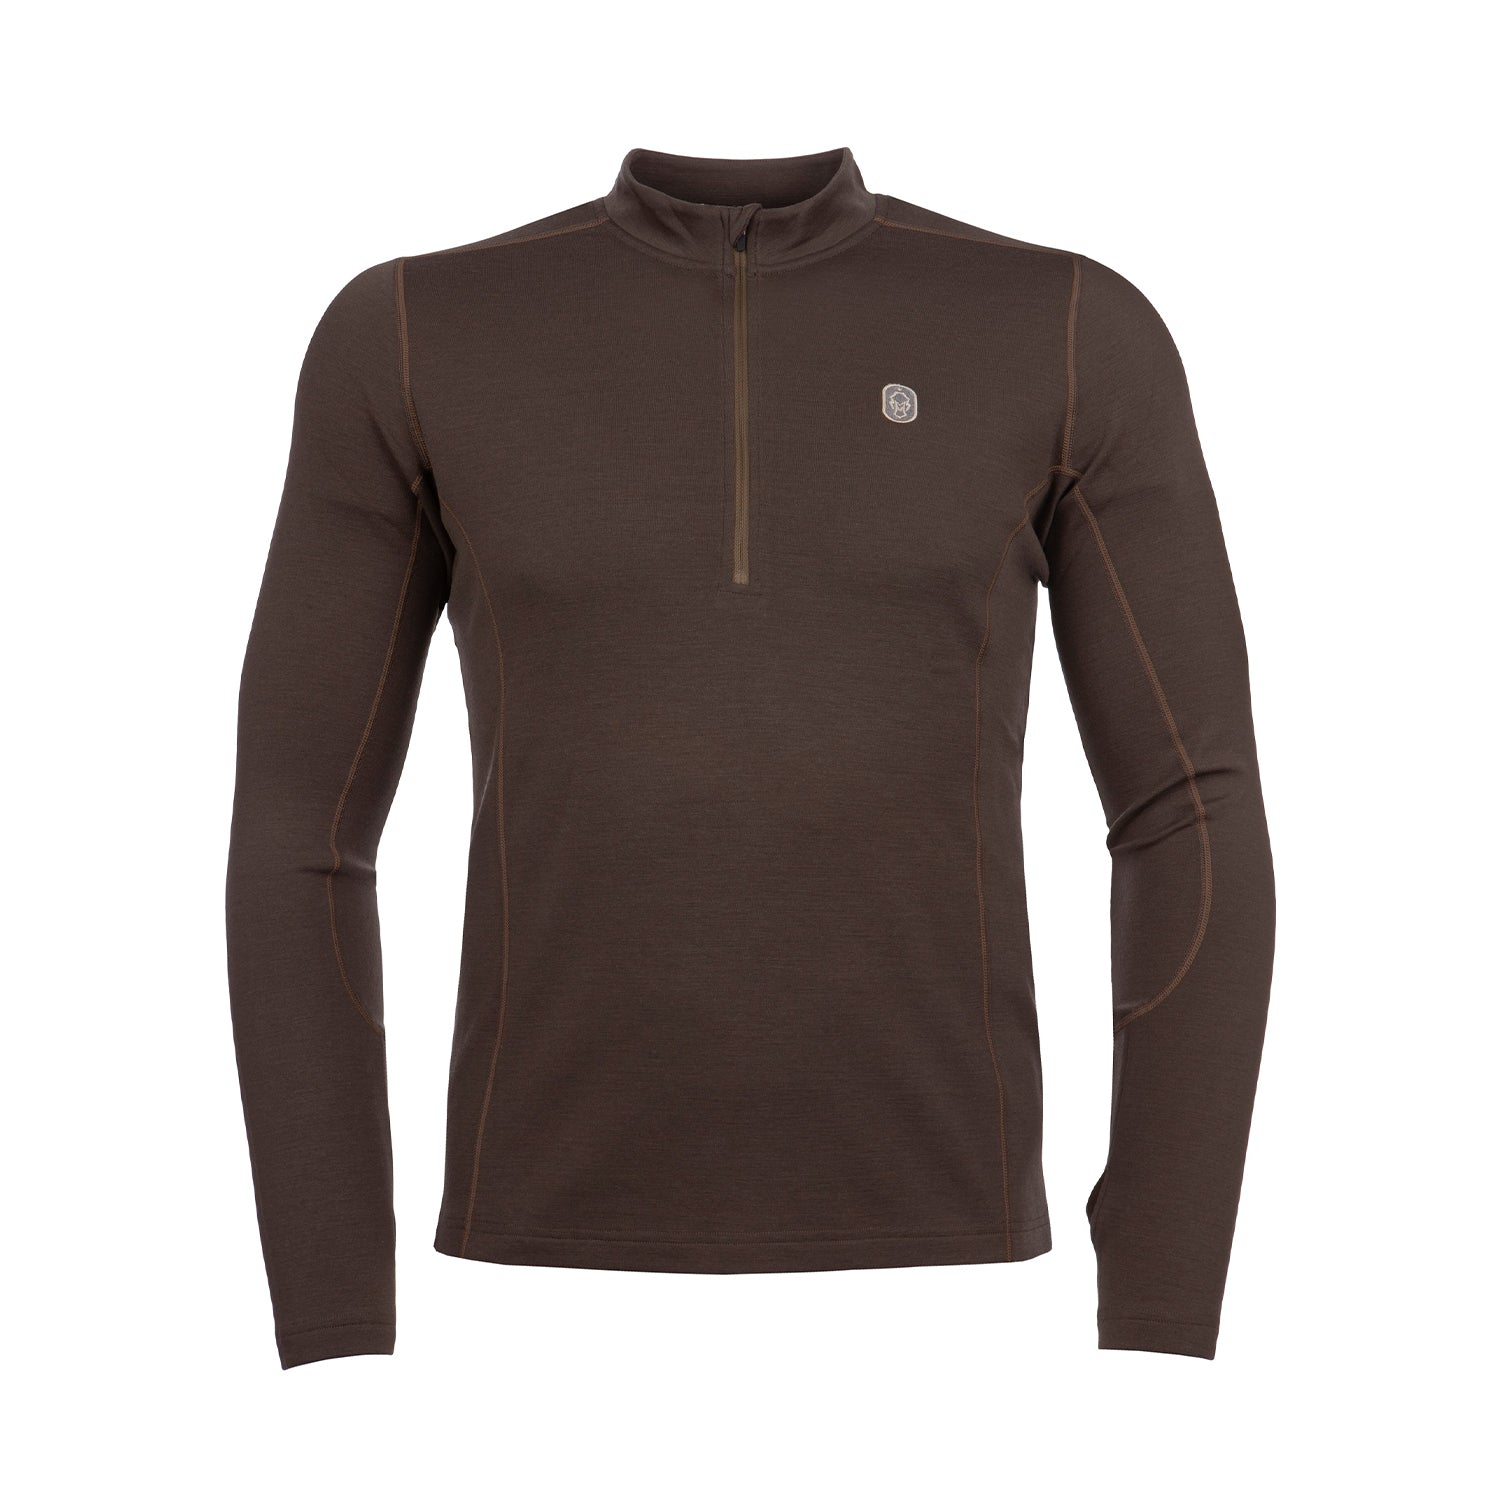 Power-M Base 1/4 Zip Top